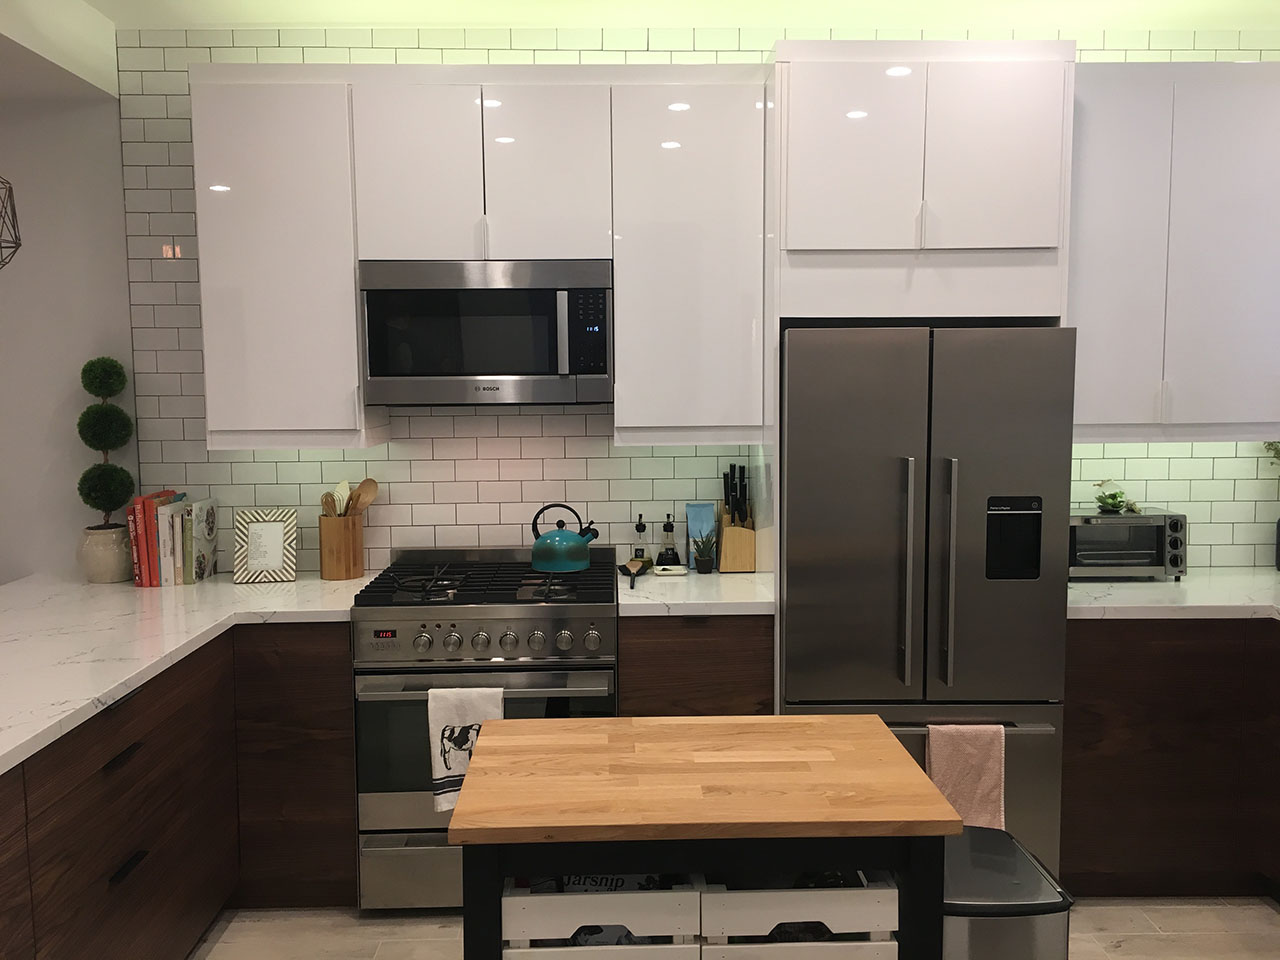 Ikea Kitchen Modern A Small Ikea Kitchen Let's Get Vertical Vertical